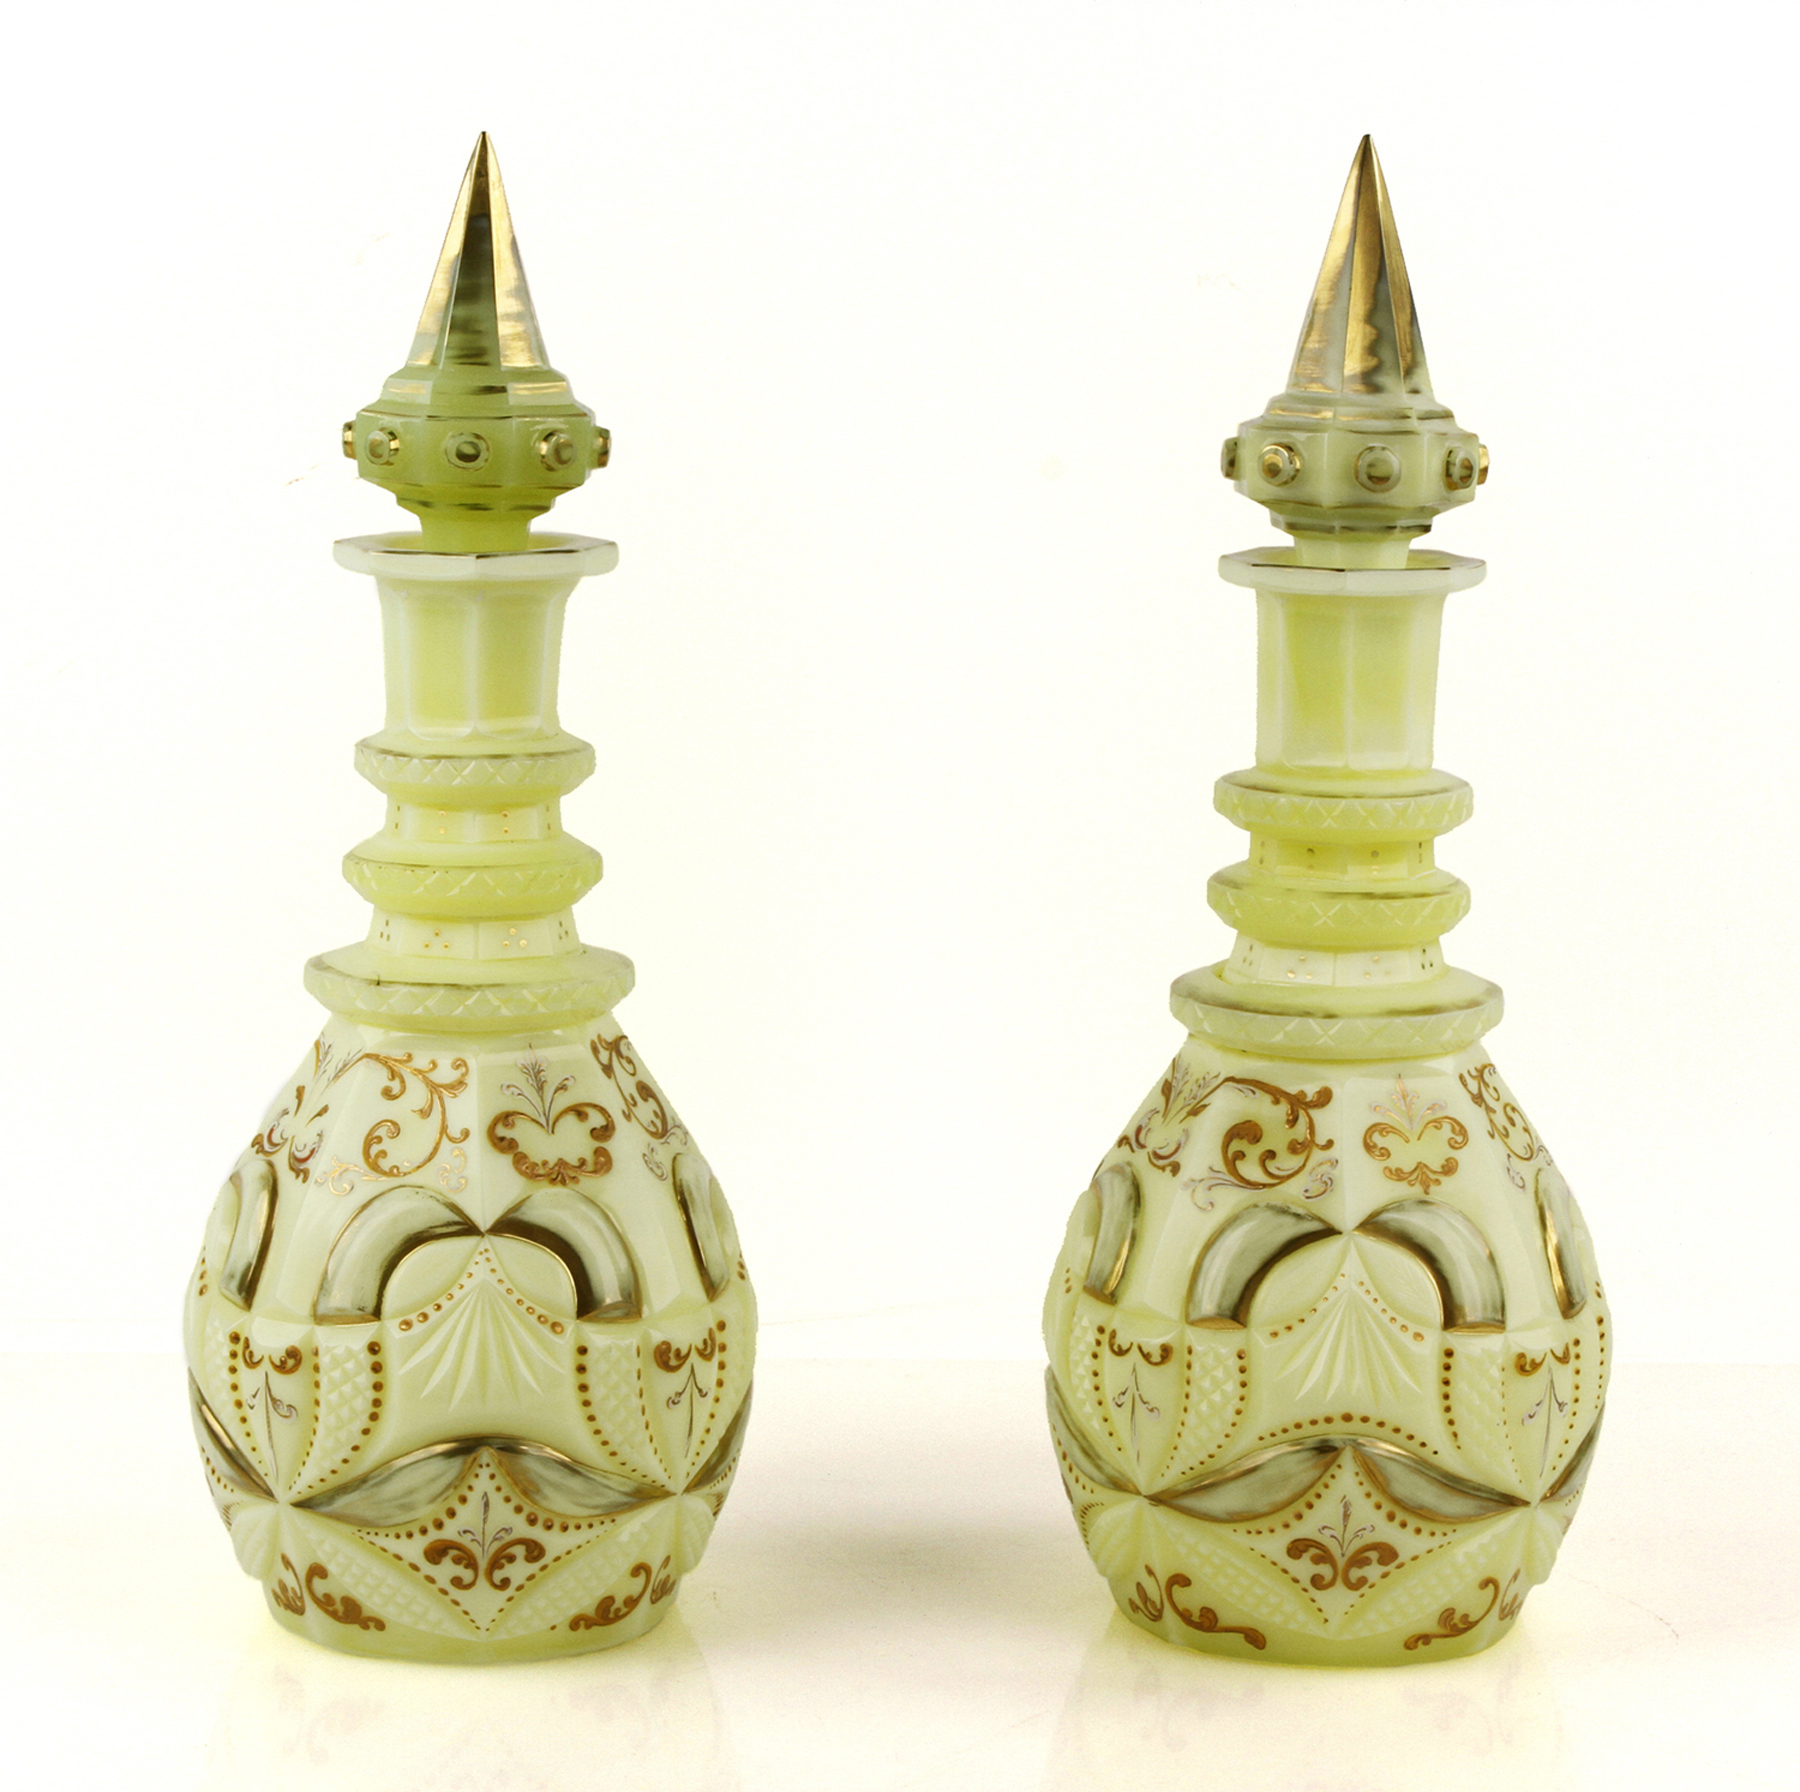 Chinese Antiques And Bohemian Glass Bring Top Prices At